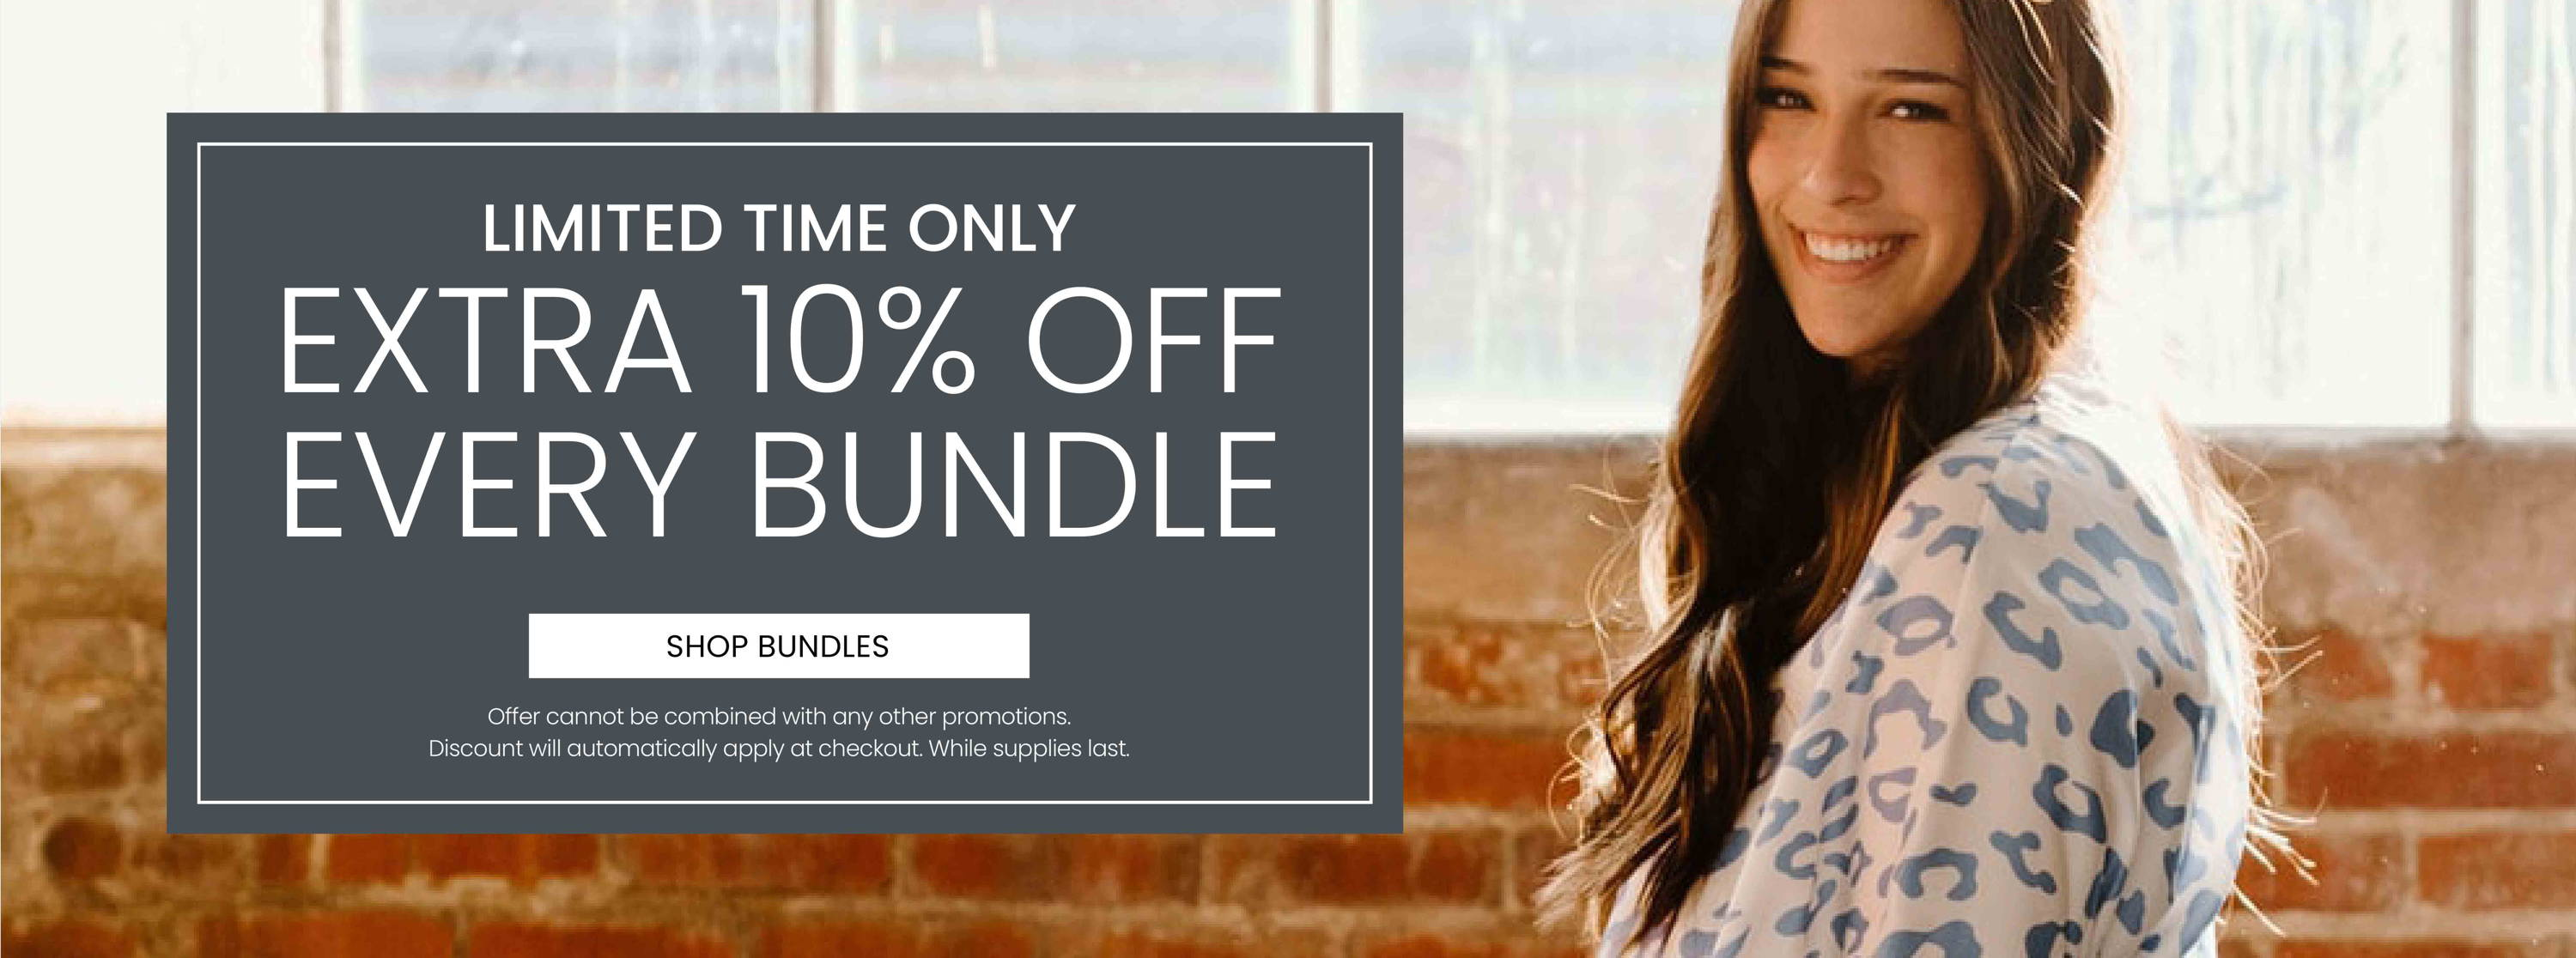 Limited Time Only. Extra 10% Off Every Bundle. Offer cannot be combined with any other promotion. Discount will automatically apply at checkout. While supplies last.